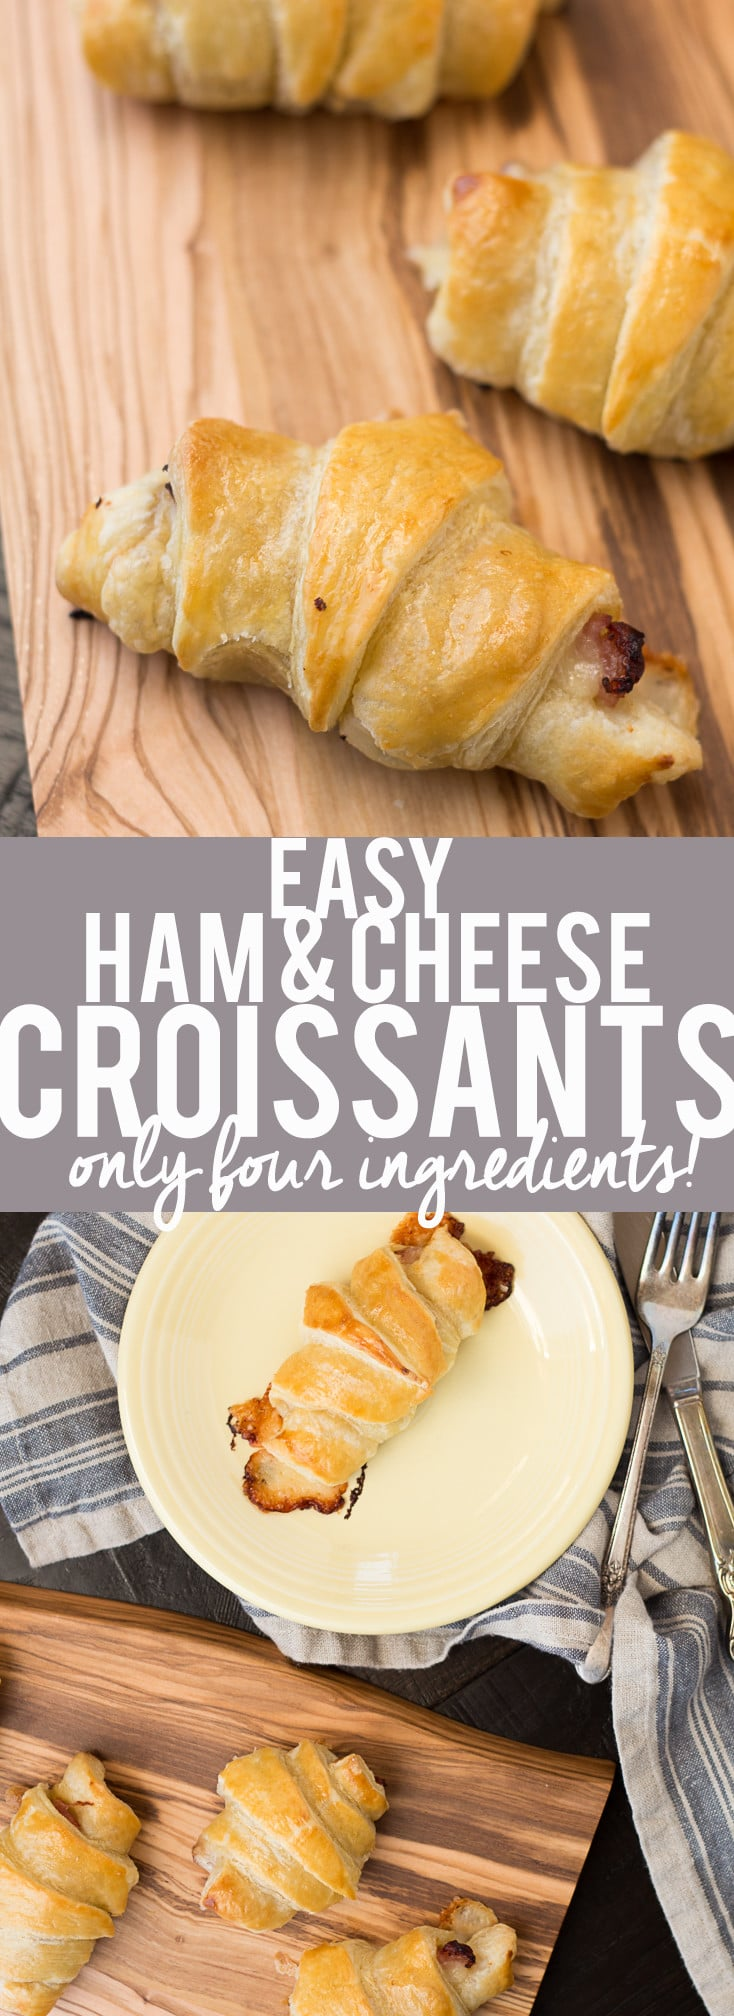 These Easy Ham and Cheese Croissants only use four ingredients and can be made in about 20 minutes! Using ham, Gruyère and puff pastry, they are delicious for breakfast, lunch or dinner. Great for using up leftover ham from the holidays!